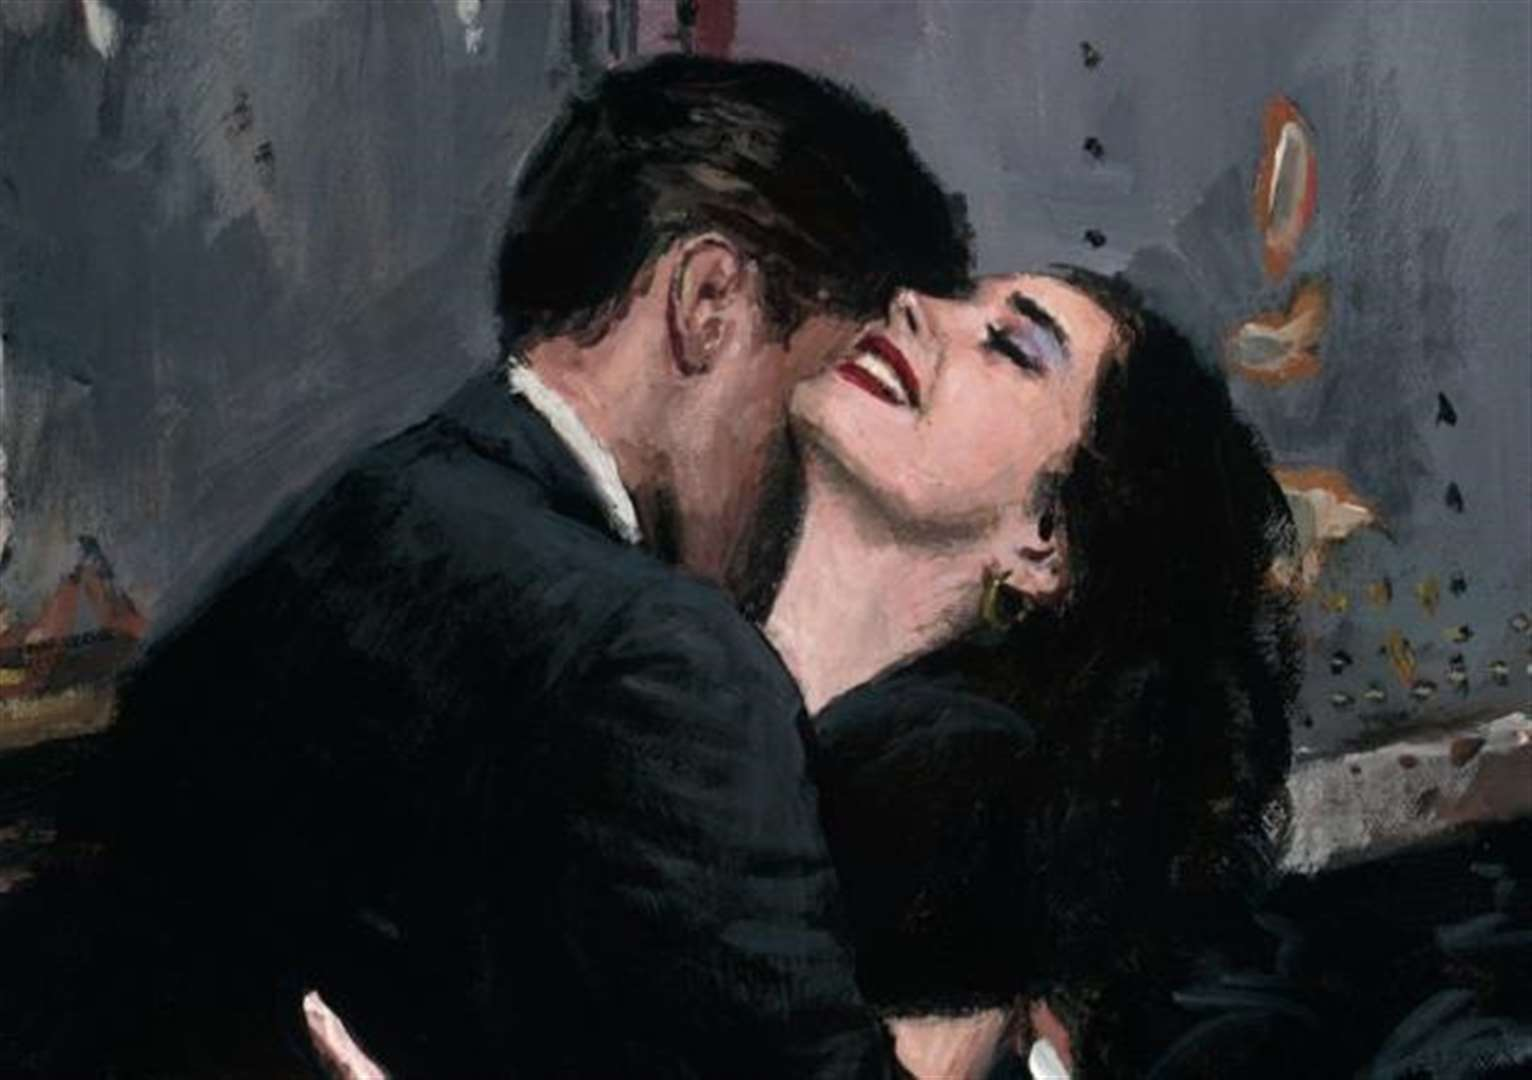 World-renowned artist Fabian Perez to showcase new collection in Cambridge